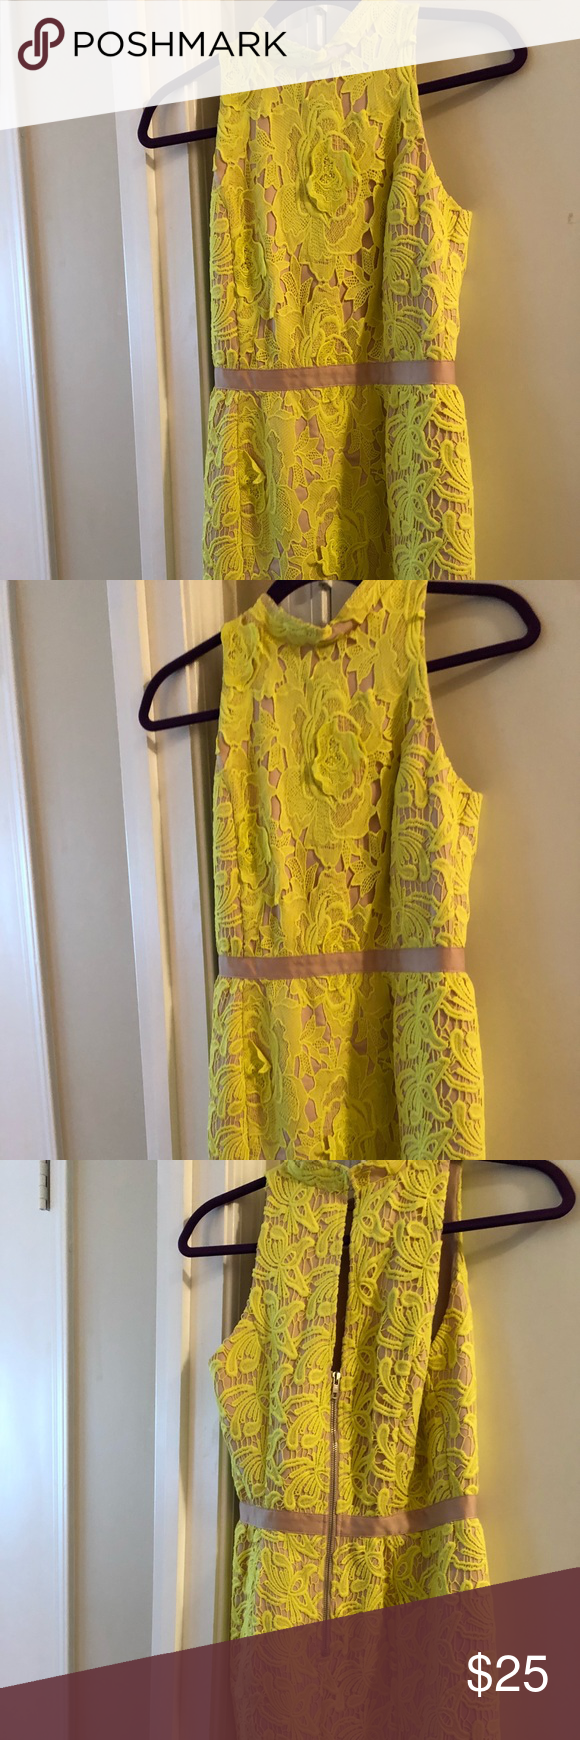 English Factory Dress Small Yellow And Light Purple Cocktail Dress Only Worn Once Smoke Free Home English Facto Purple Cocktail Dress Dresses Women Shopping